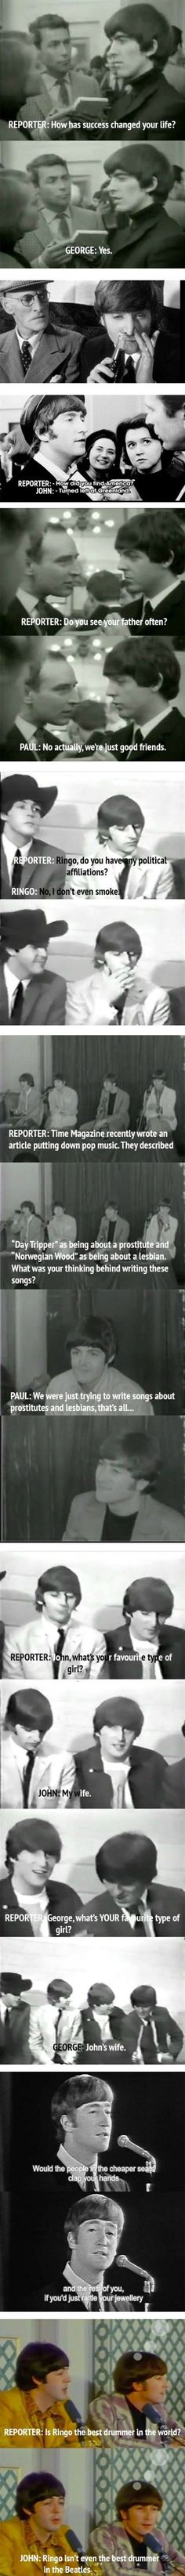 so apparently The Beatles were HILARIOUS these are sooooo funny